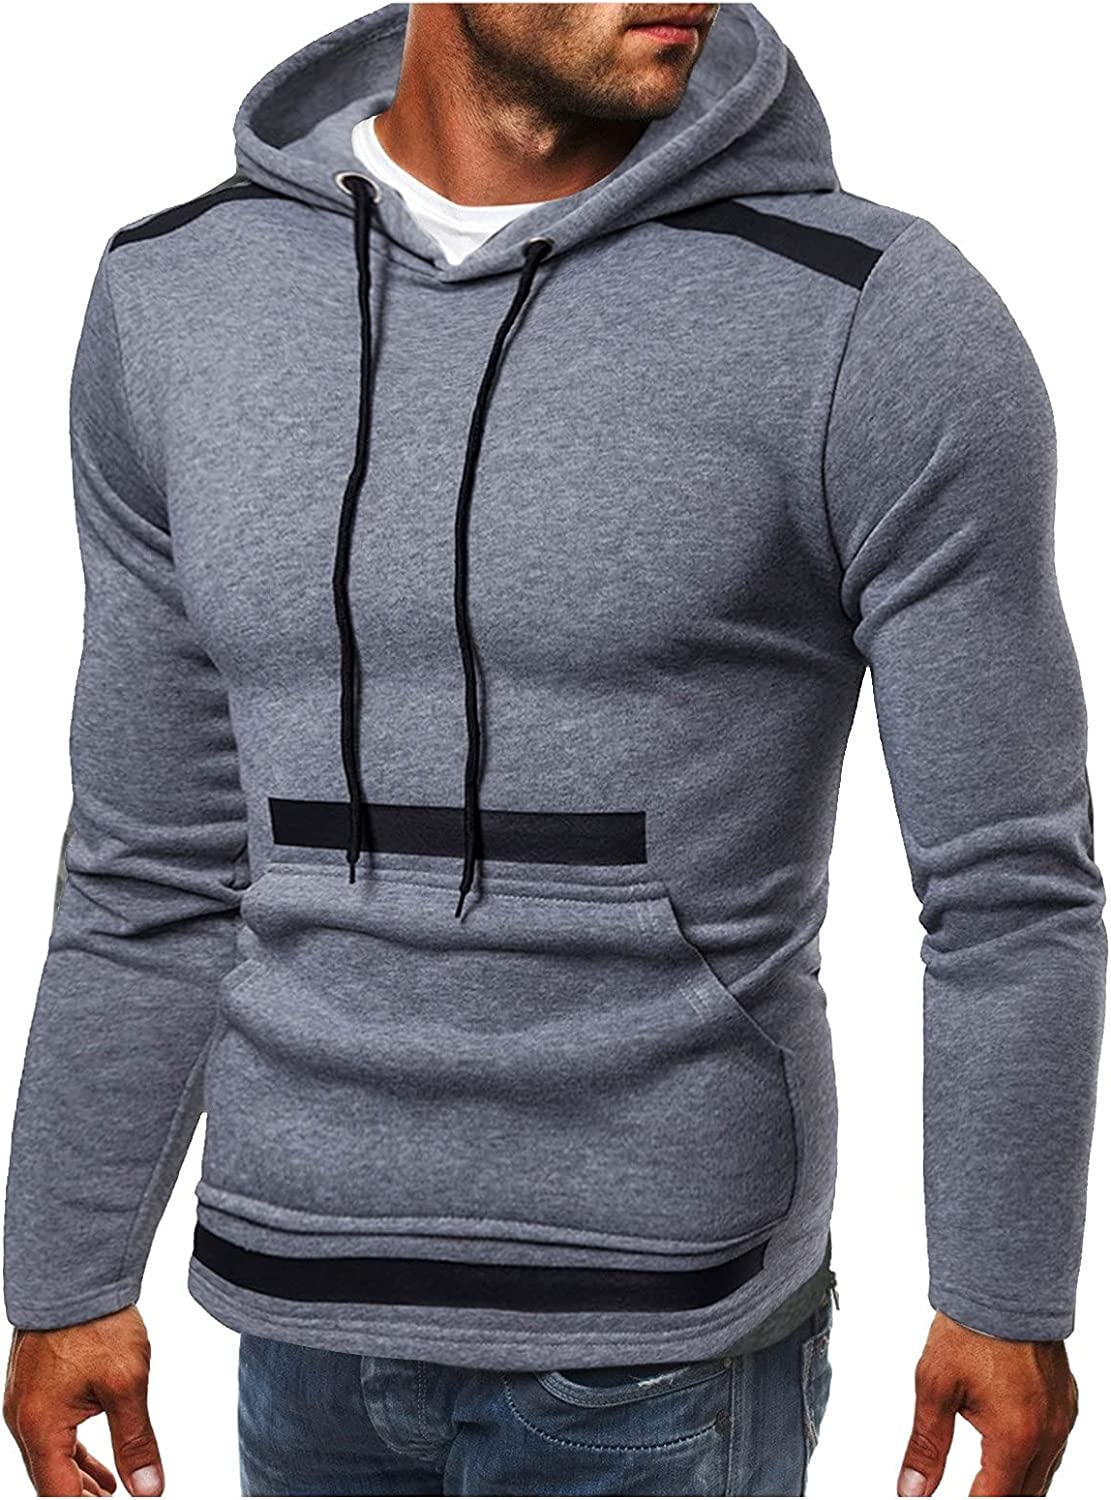 HONGJ Patchwork Hoodies for Mens, Fall Color Block Stitching Hooded Sweatshirts Slim Fit Workout Sports Zipper Jackets